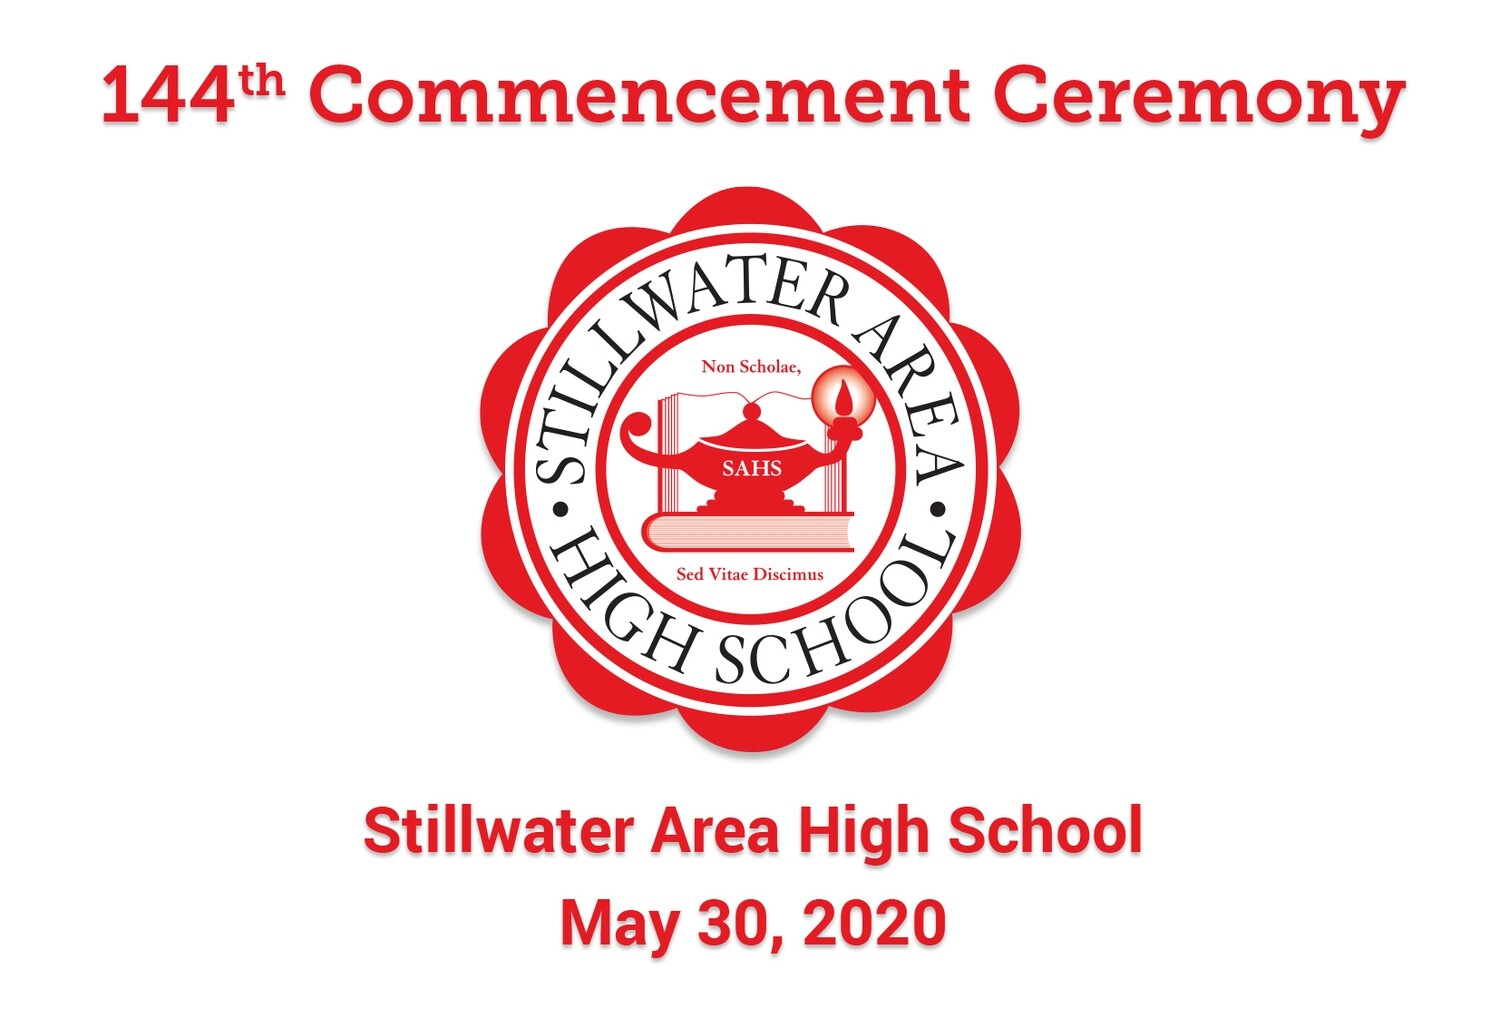 2020 SAHS Virtual Commencement : May 30, 2020